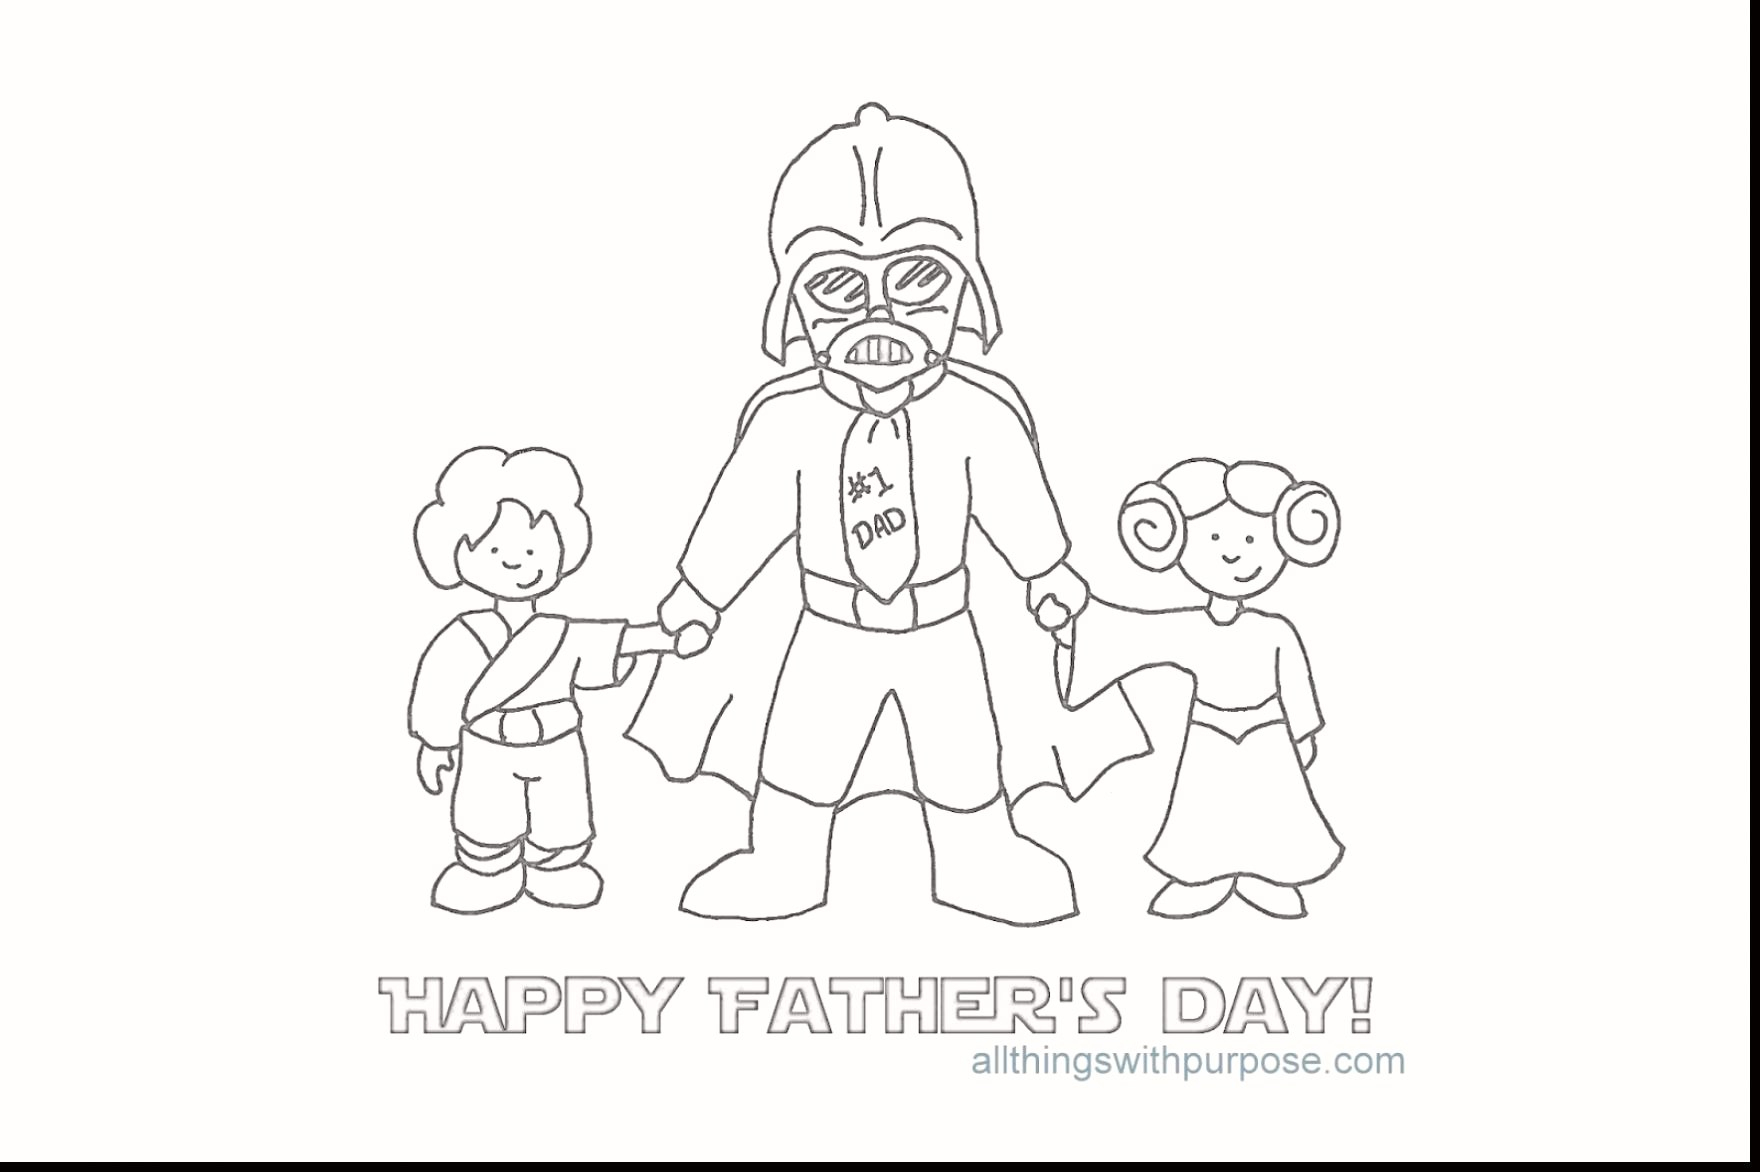 Happy Fathers Day Coloring Pages - Saglik - Free Printable Fathers Day Coloring Pages For Grandpa